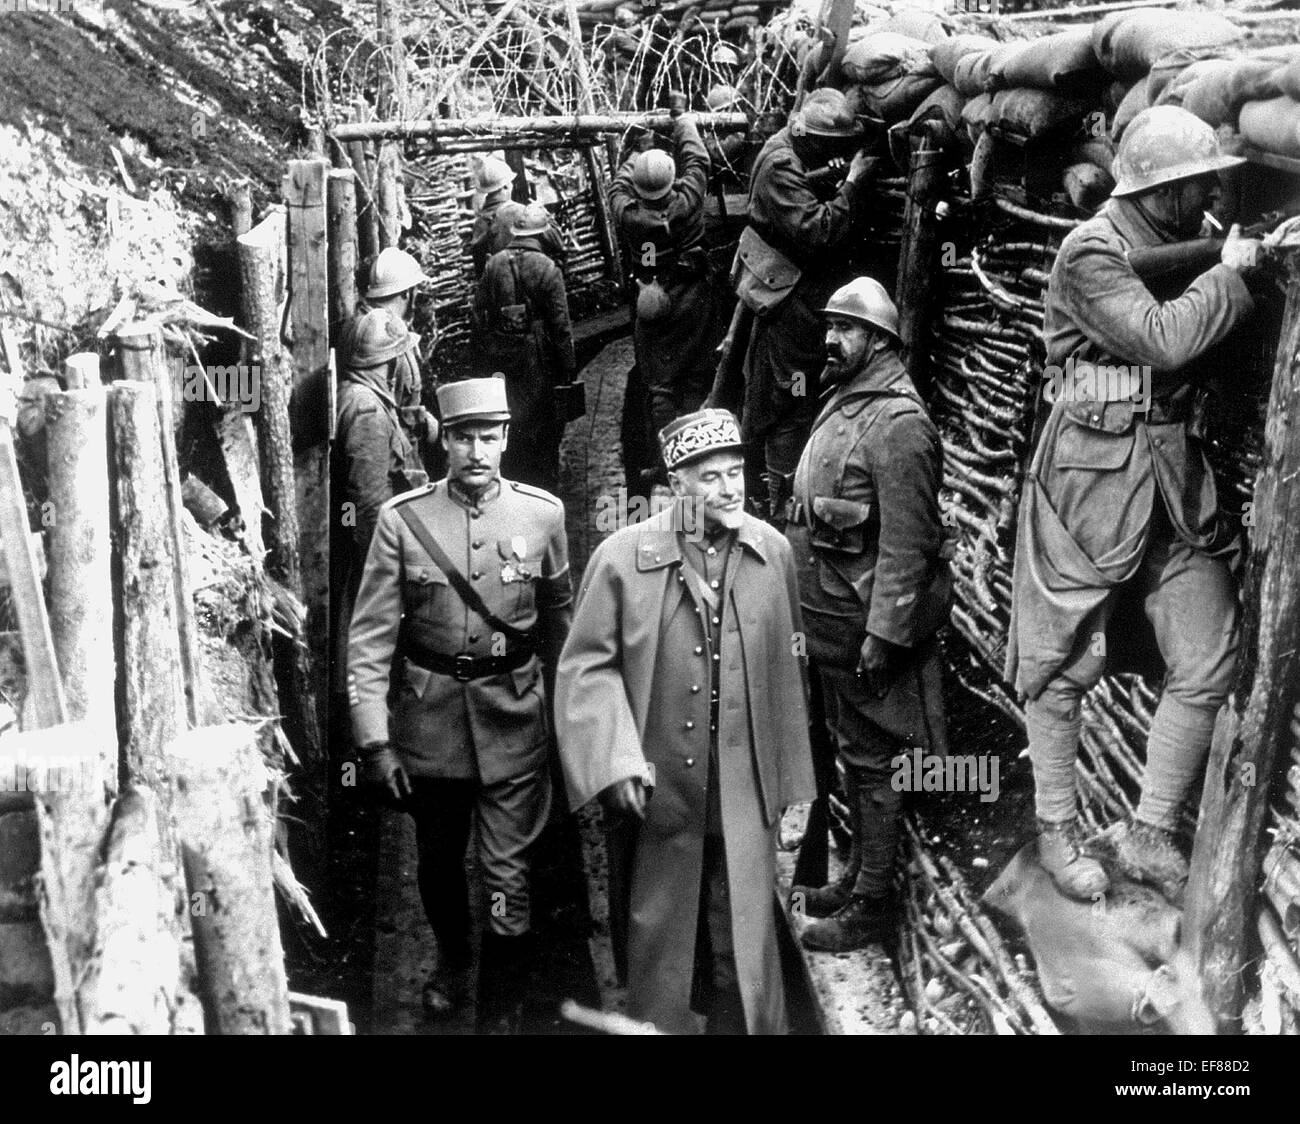 SOLDIERS IN TRENCHES PATHS OF GLORY (1957) - Stock Image